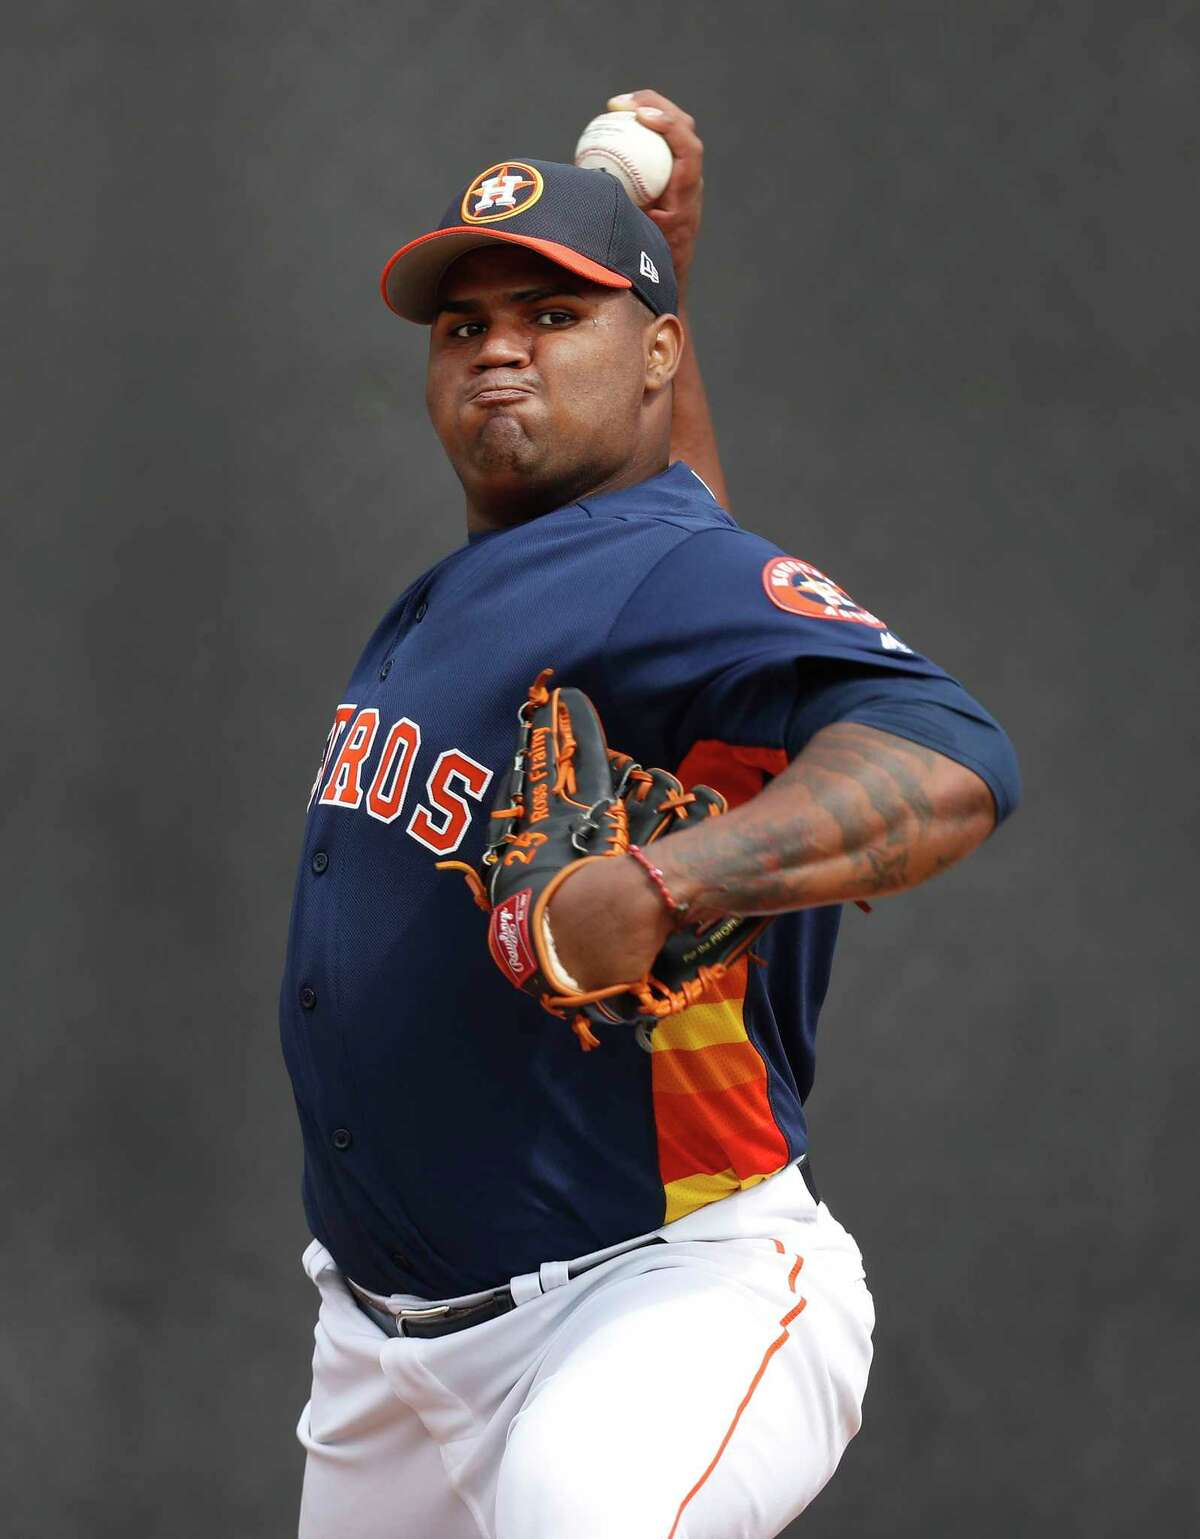 Frances Martes threw a 1-2-3 fourth against the heart of the Marlins' order in Wednesday's 9-5 Astros loss.